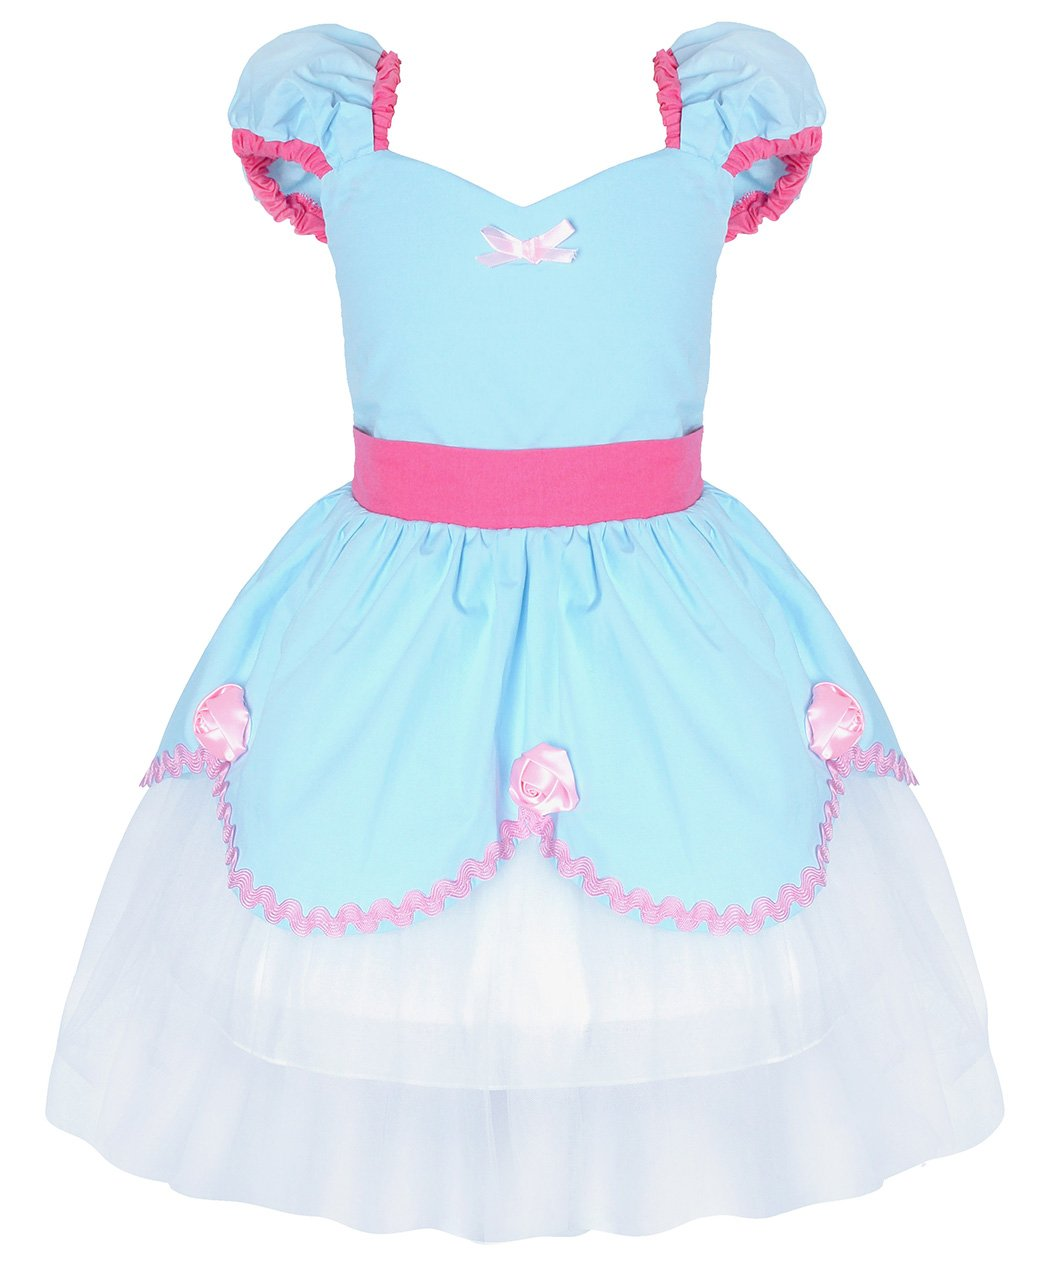 Cotrio Baby Girls Princess Cinderella Dress up Costumes Birthday Them Party Dresses Size 2T (90, Blue Cinderella)